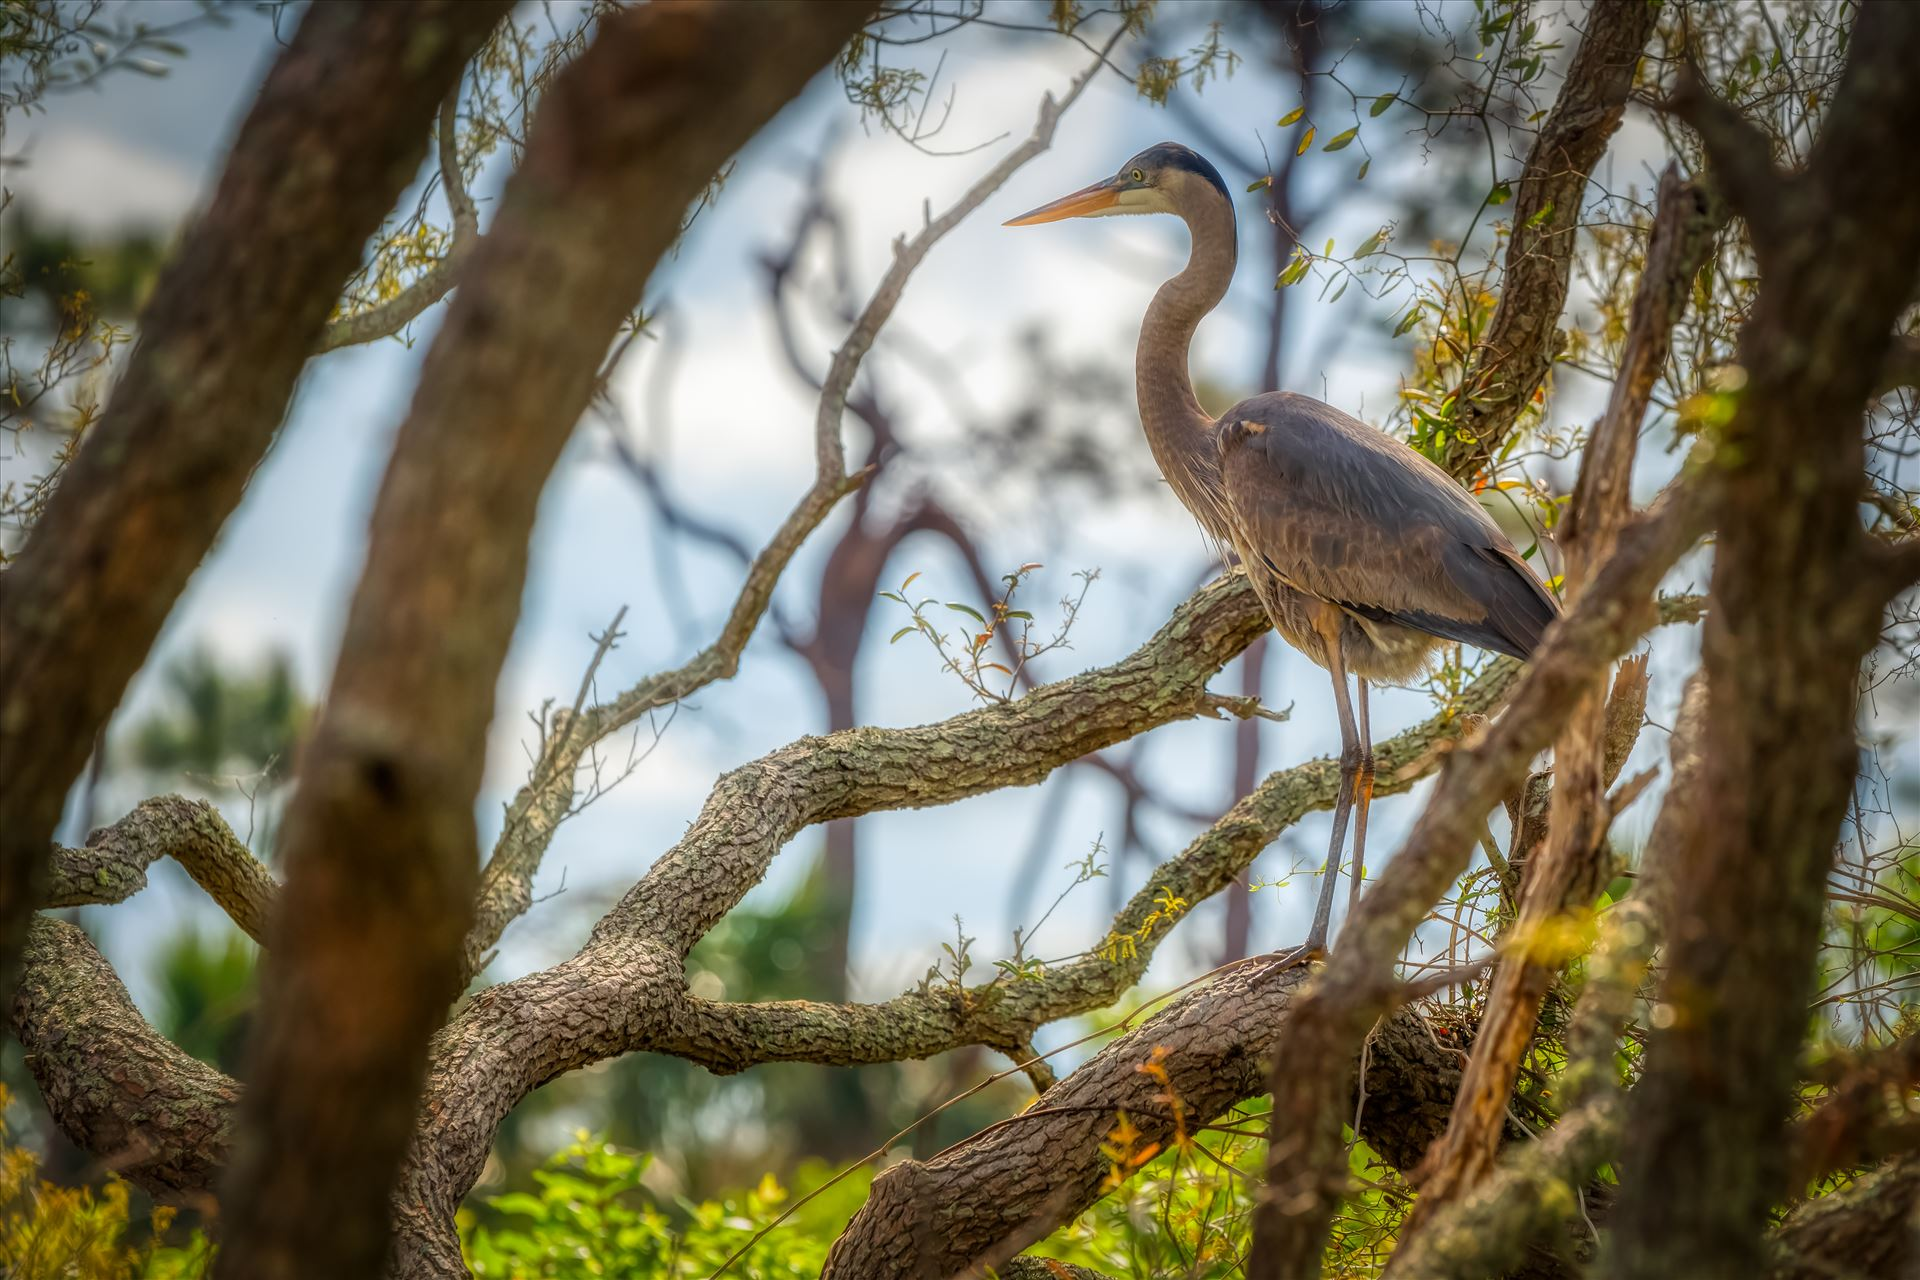 great blue heron - great blue heron standing on oak tree near gator lake at St. Andrews State Park, Florida by Terry Kelly Photography